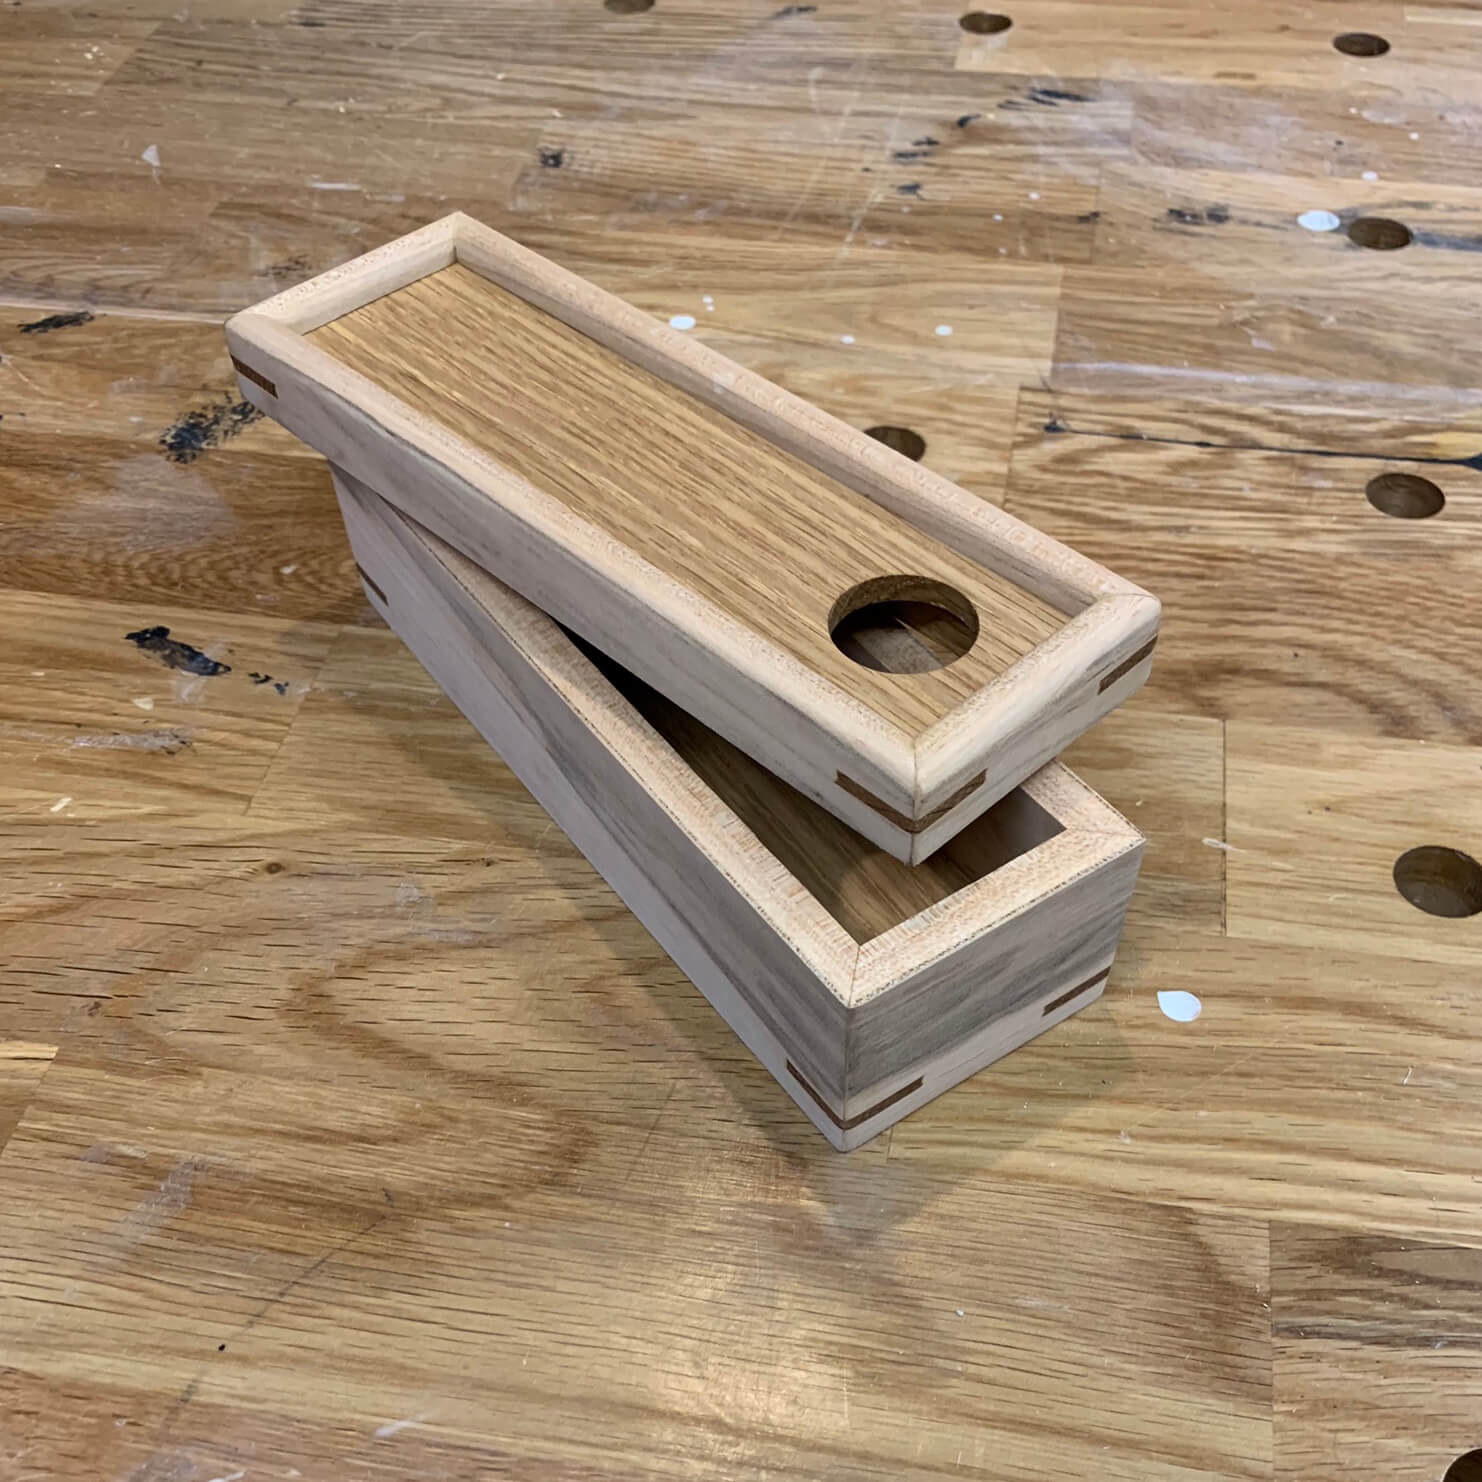 Austin School Of Furniture Design Woodworking And Furniture Classes